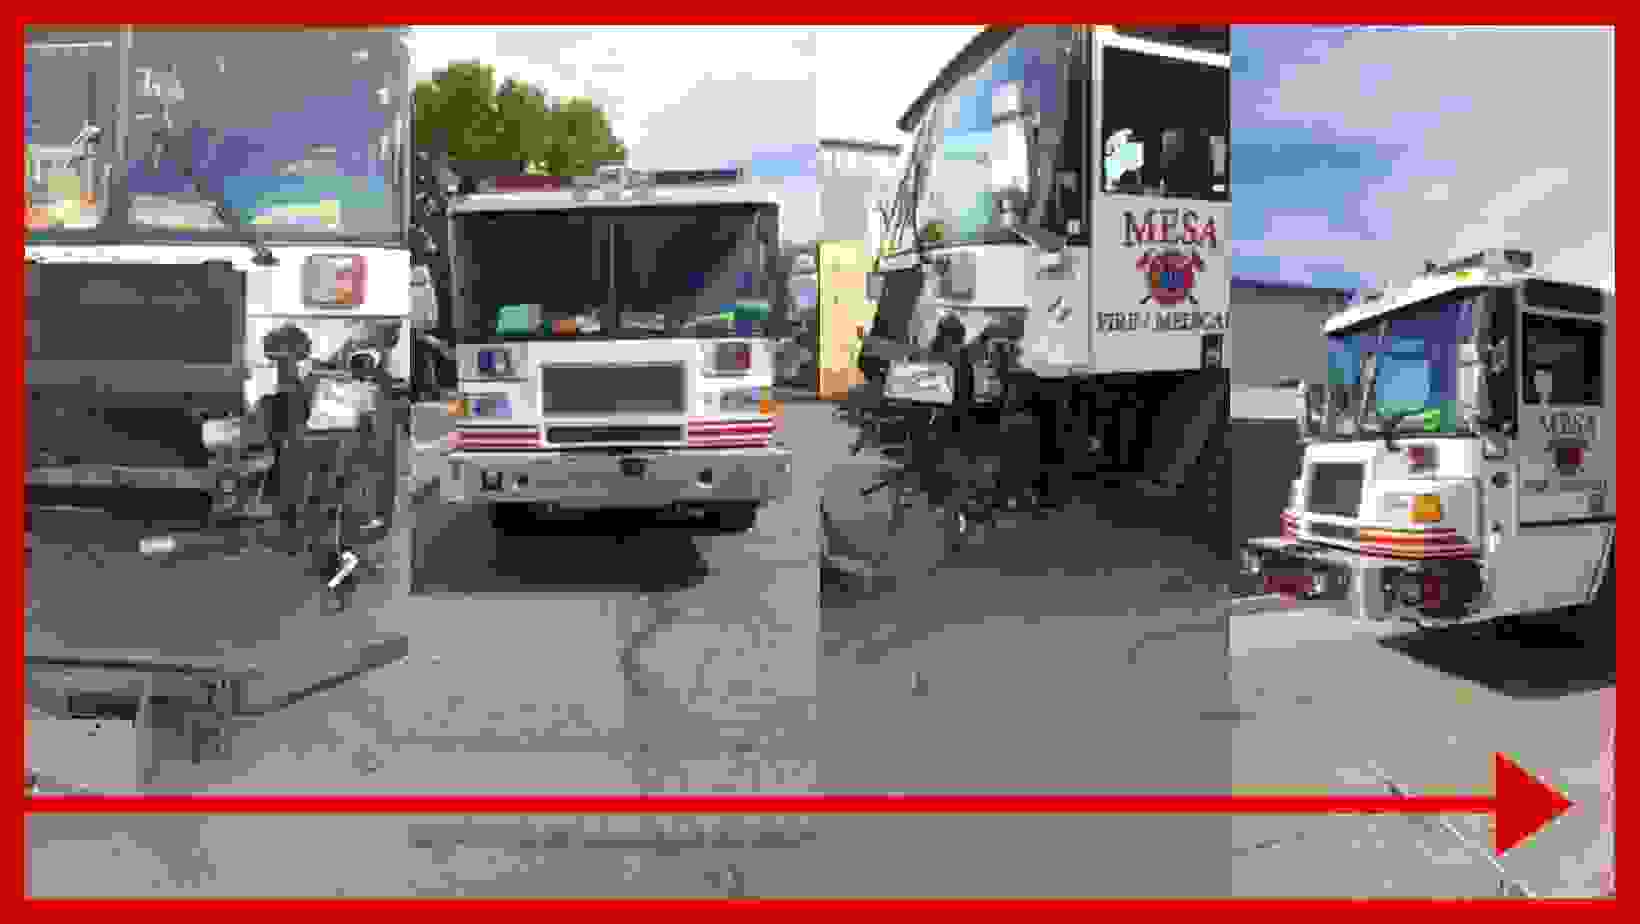 Fire Truck collision repair, ambulance collision repair and paint, emergency vehicle collision repai